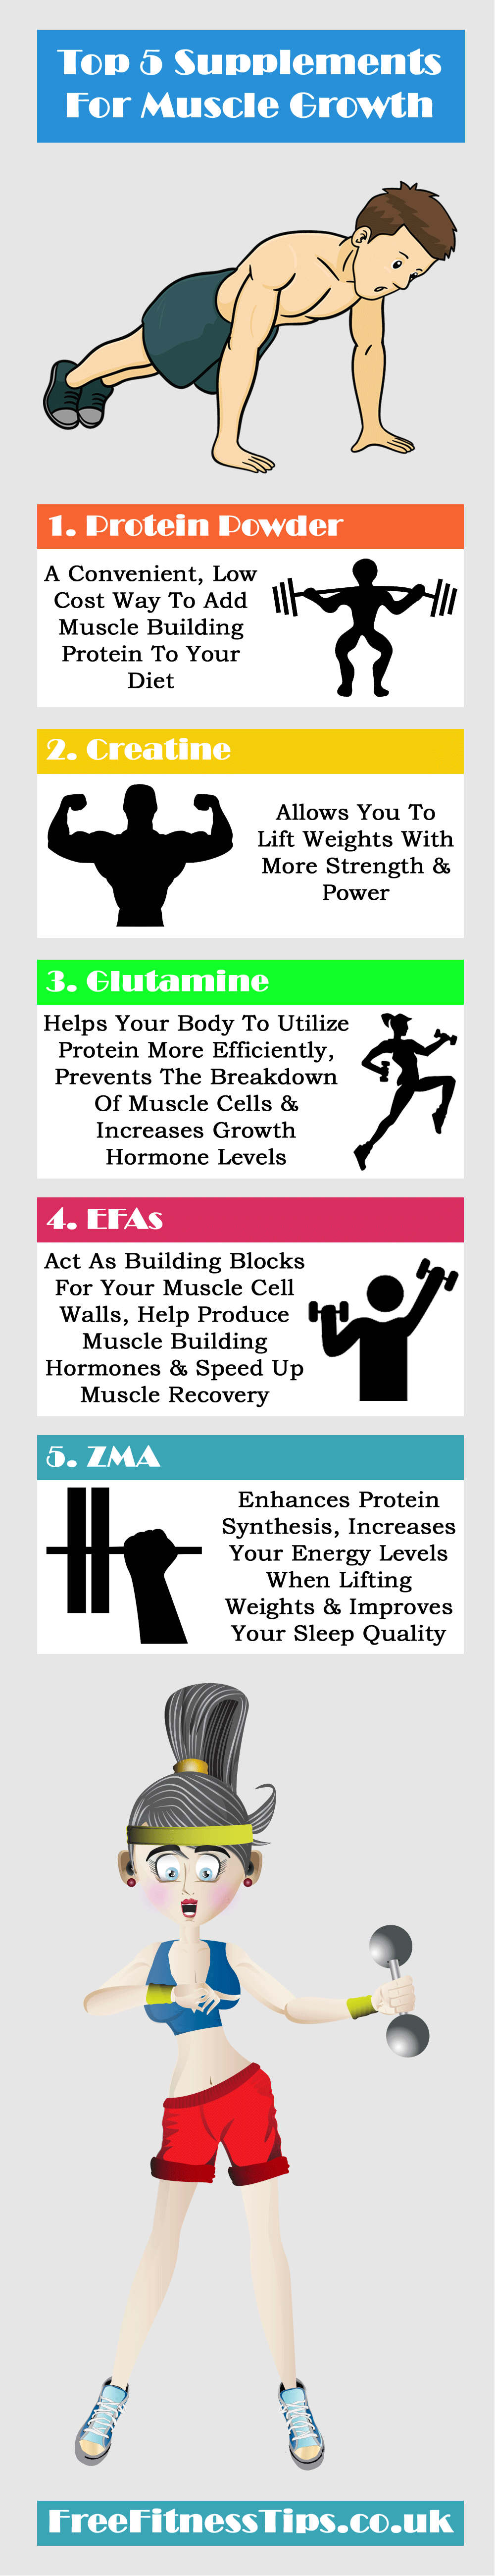 top supplements for muscle growth